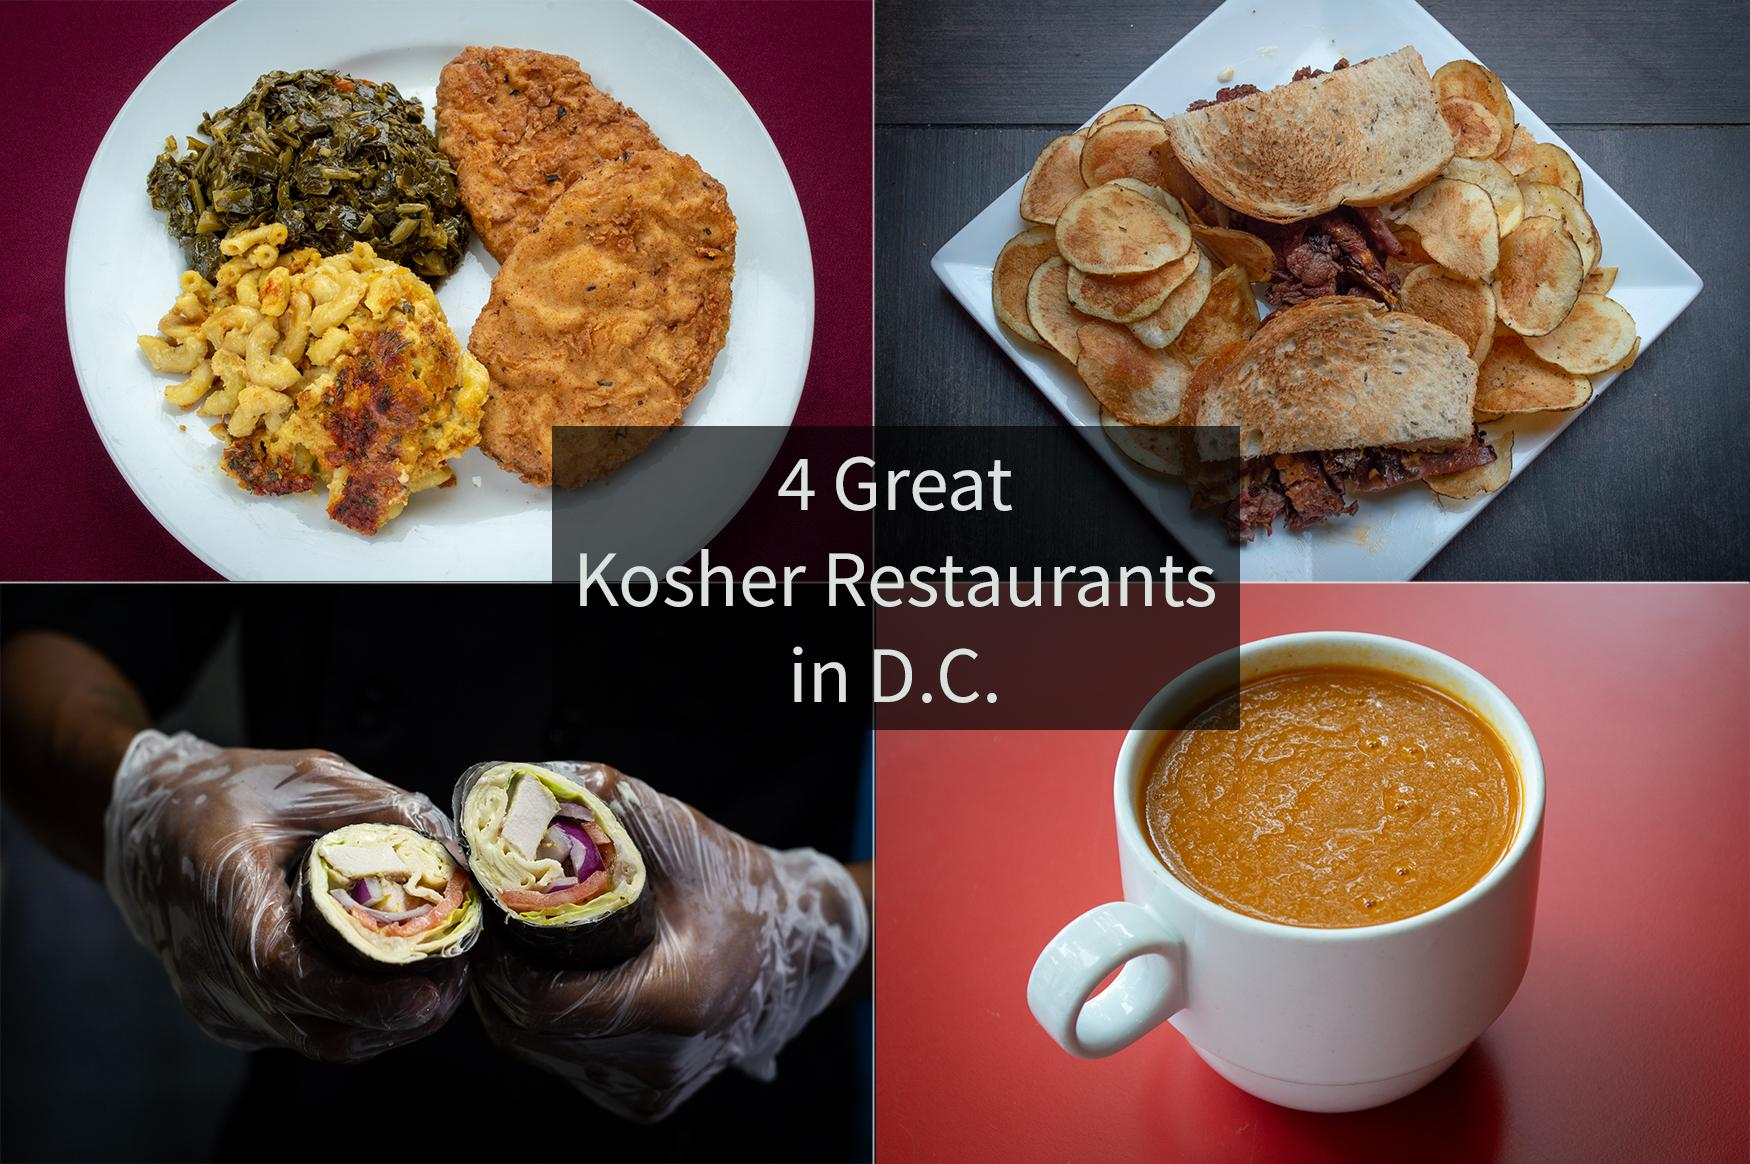 Have you ever wanted to try kosher food and still eat out in style? Whether you keep kosher yourself, have a friend or co-worker who does, or are simply looking for good food, these four{ } kosher restaurants in D.C. will have your mouth watering. Because kosher dietary laws prohibit mixing milk and meat together, kosher restaurants are usually separated into three categories: milk, meat or neither. (David Fisher/DC Refined)